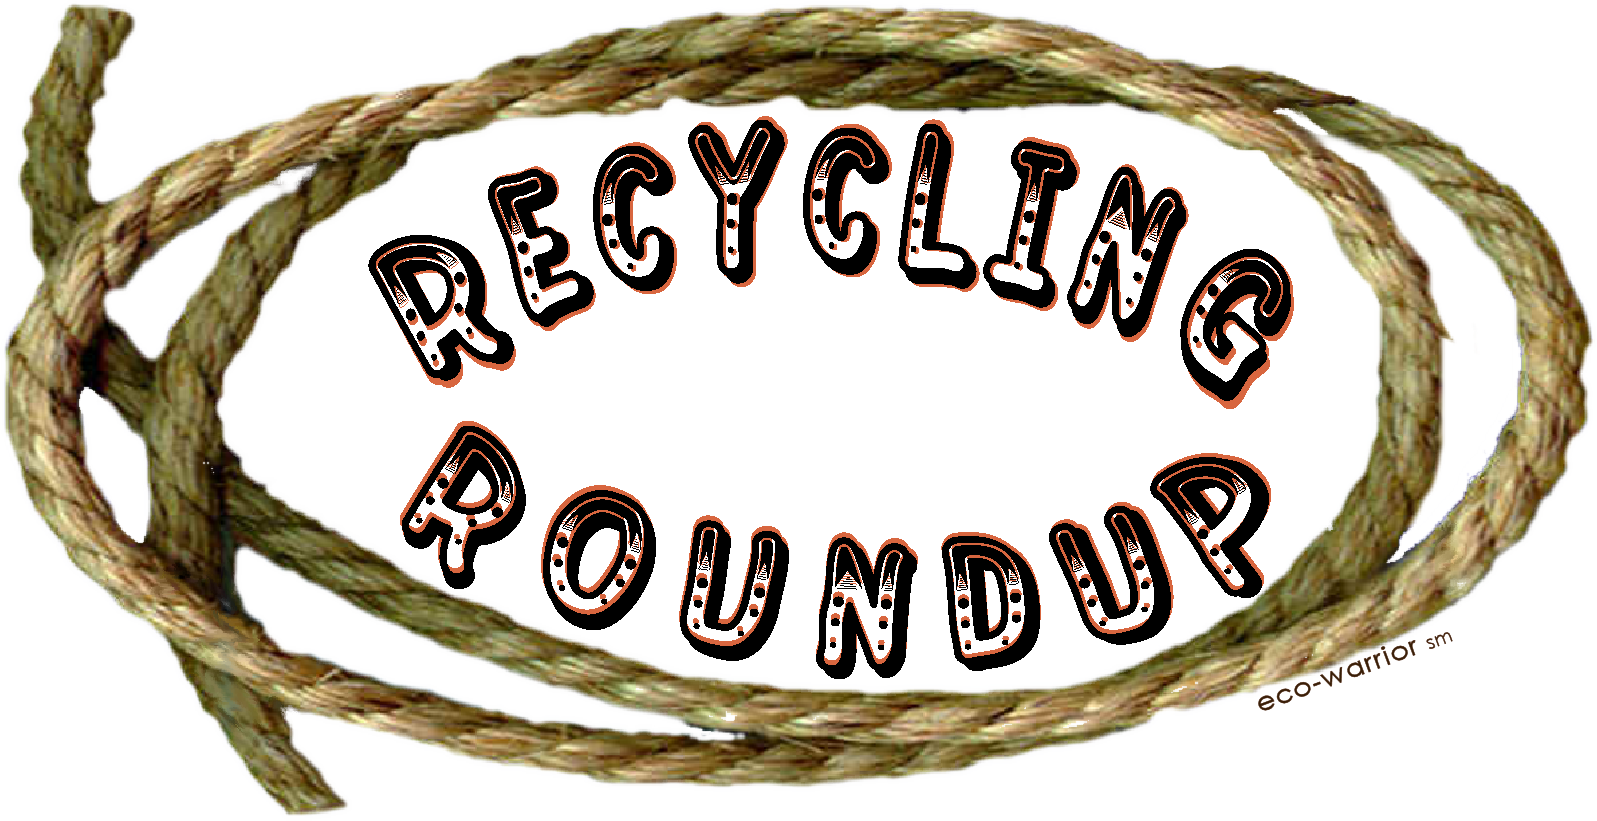 Rope clipart roundup #12